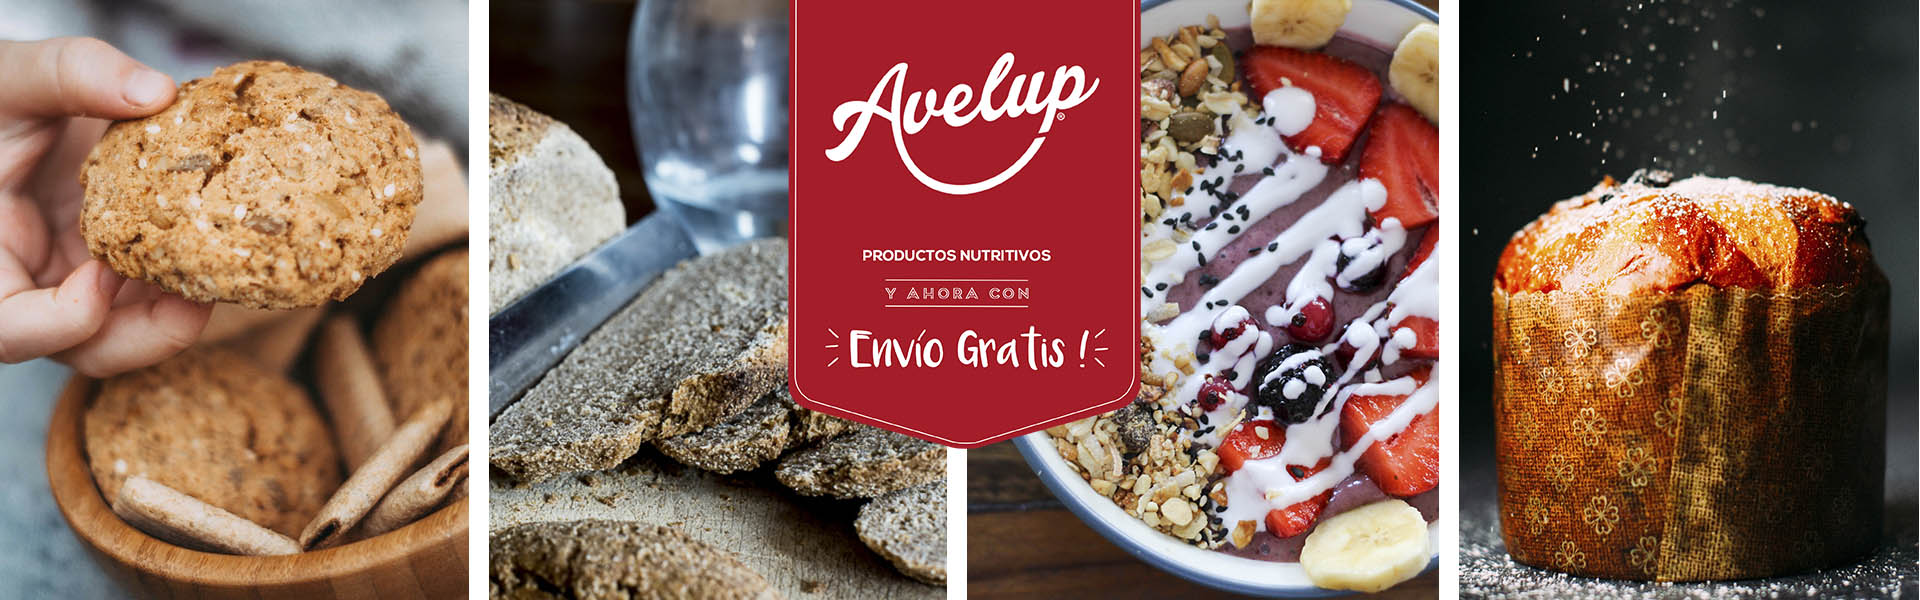 Avelup, Dieta Saludable